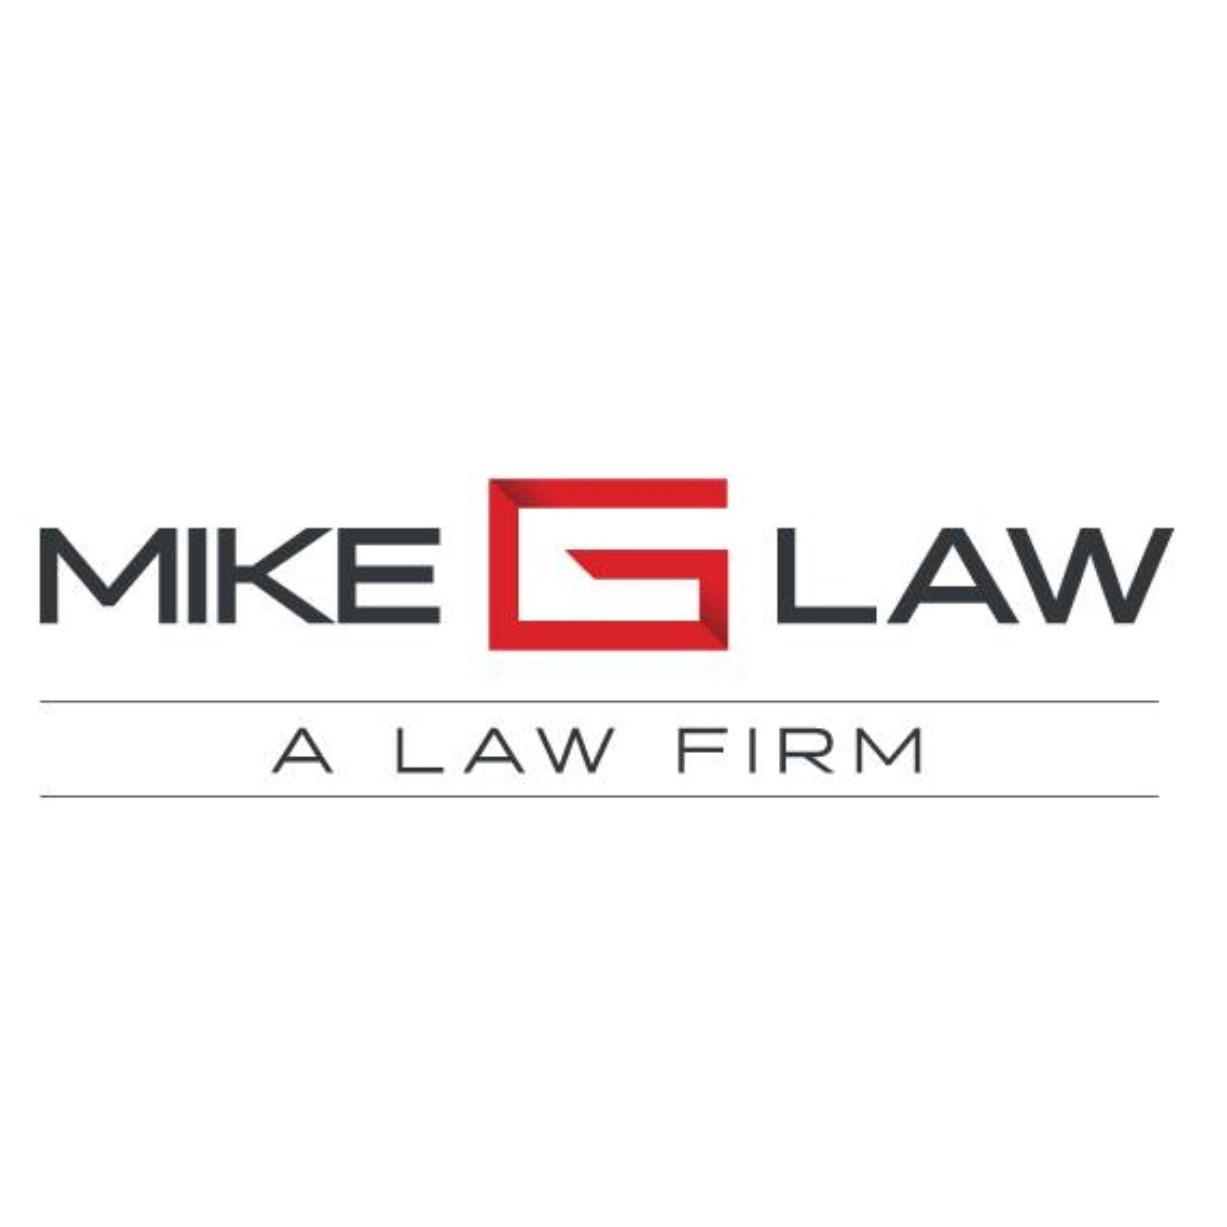 Mike G Law